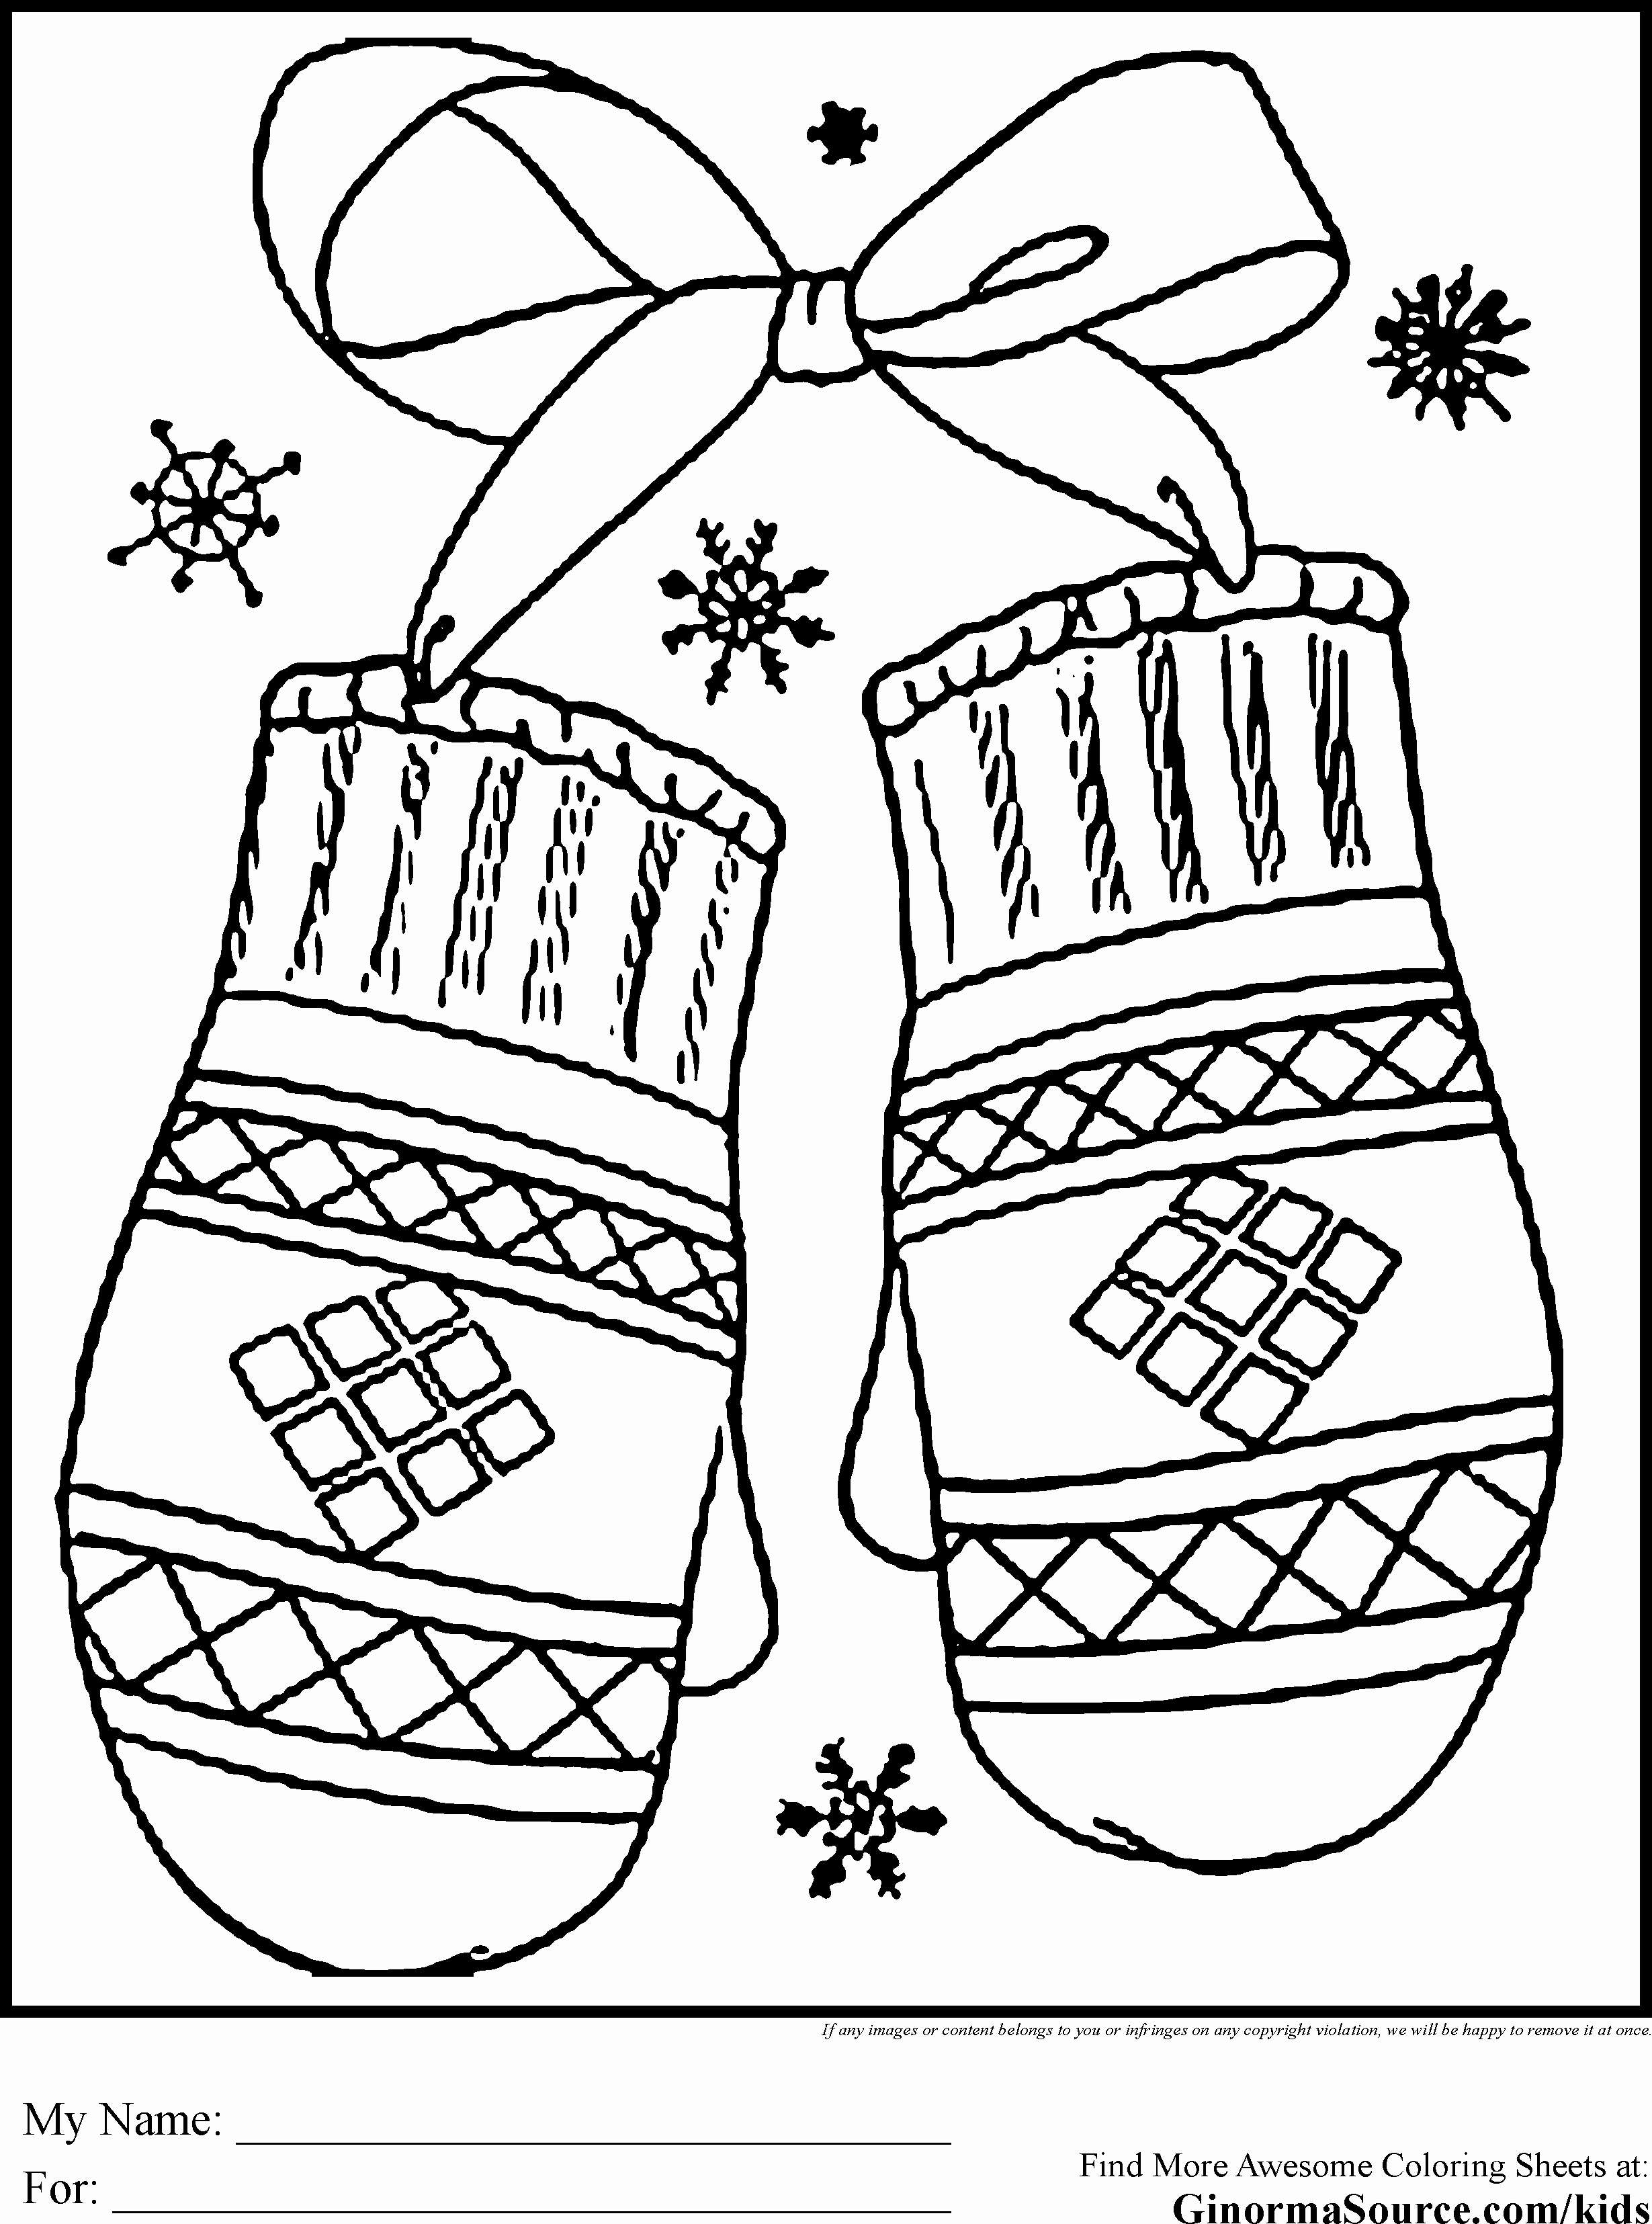 Printable Christmas Coloring Pages With Happy Holidays Free